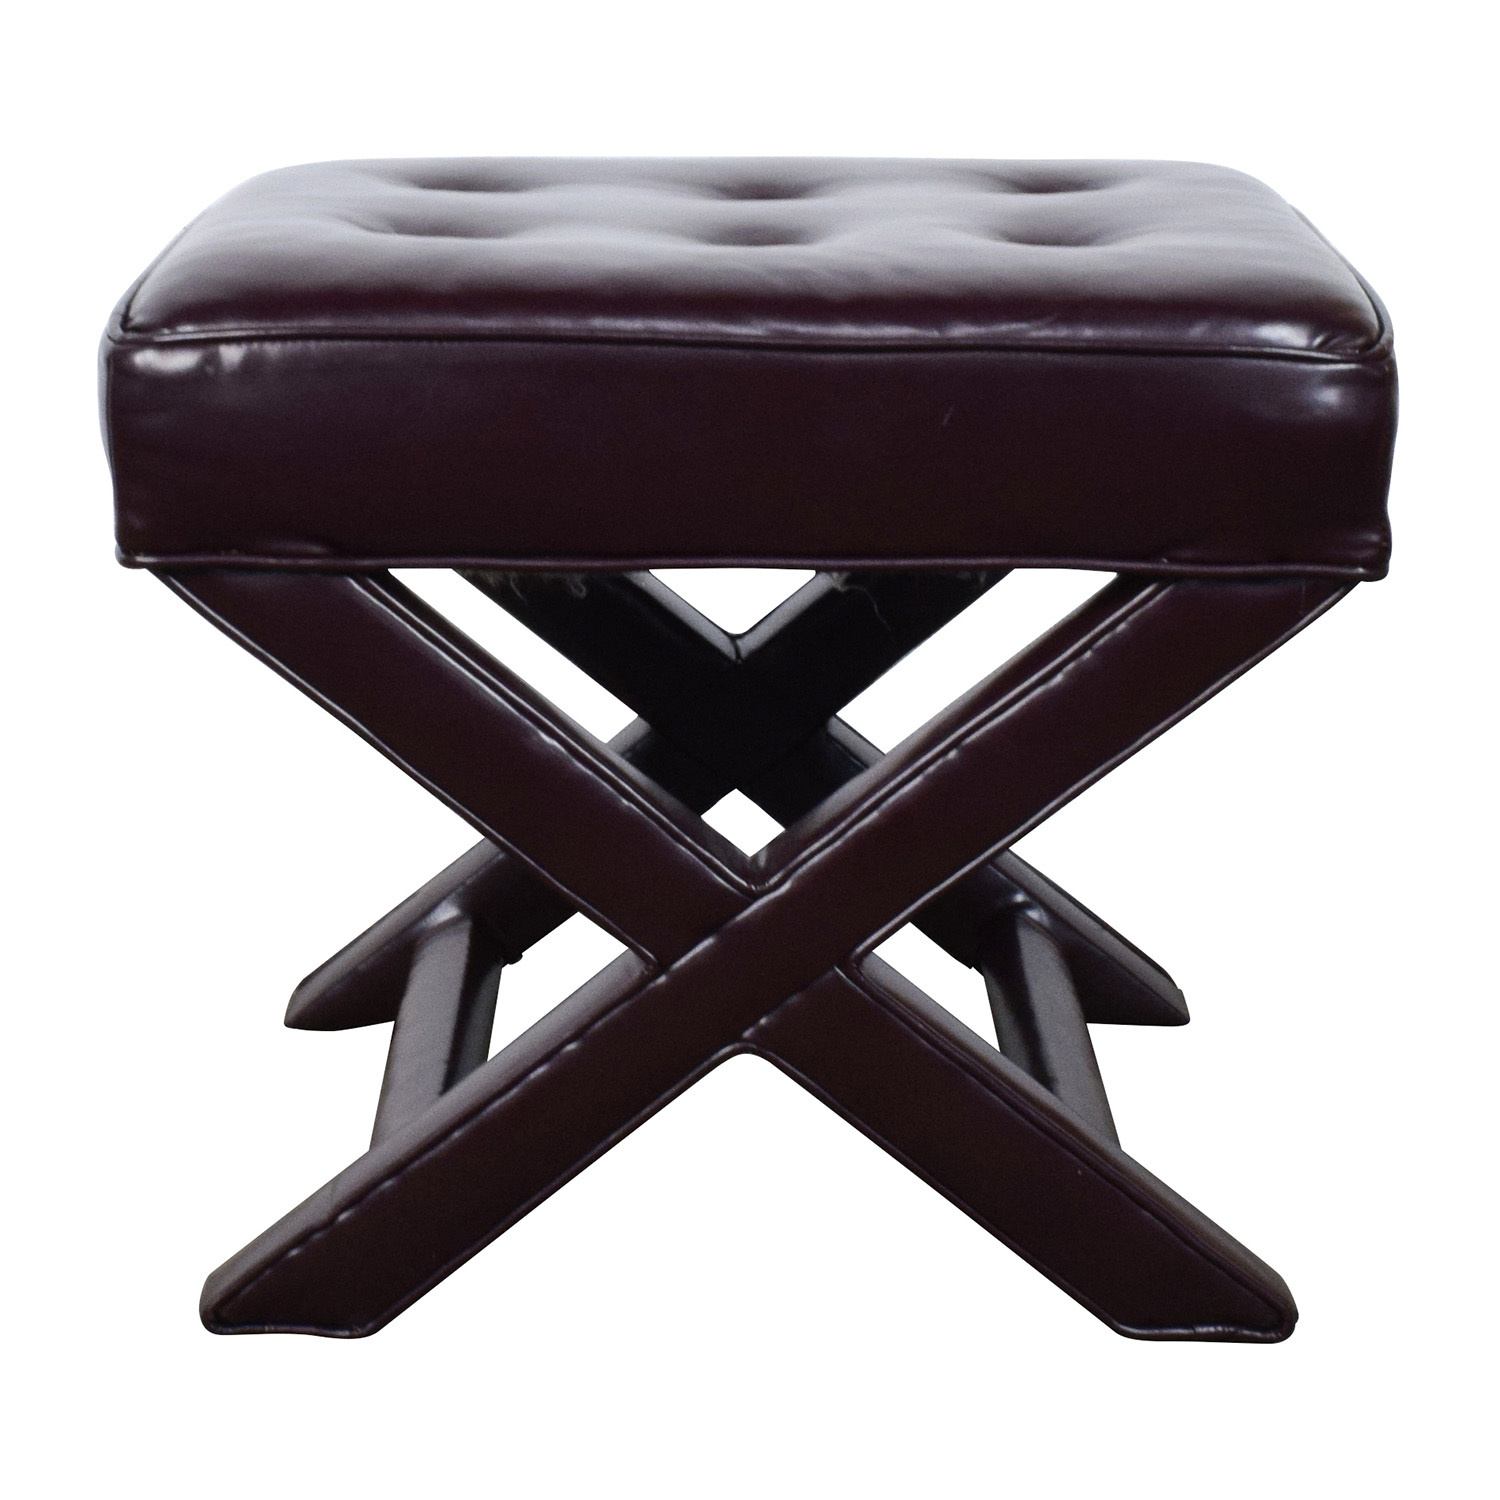 Burgundy Tufted Leather Ottoman second hand